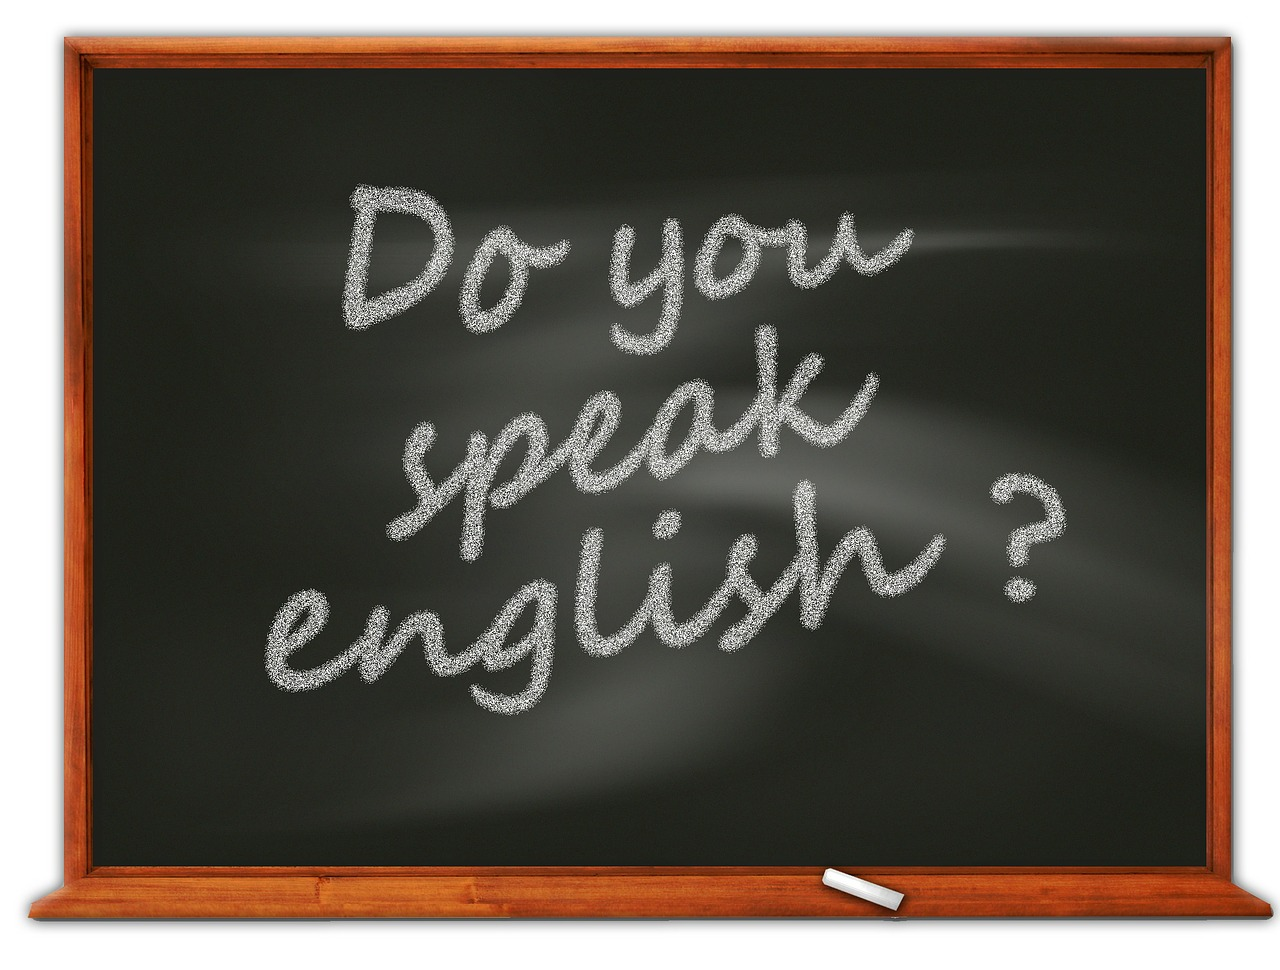 TOM SPIKE - Do You Speak English?